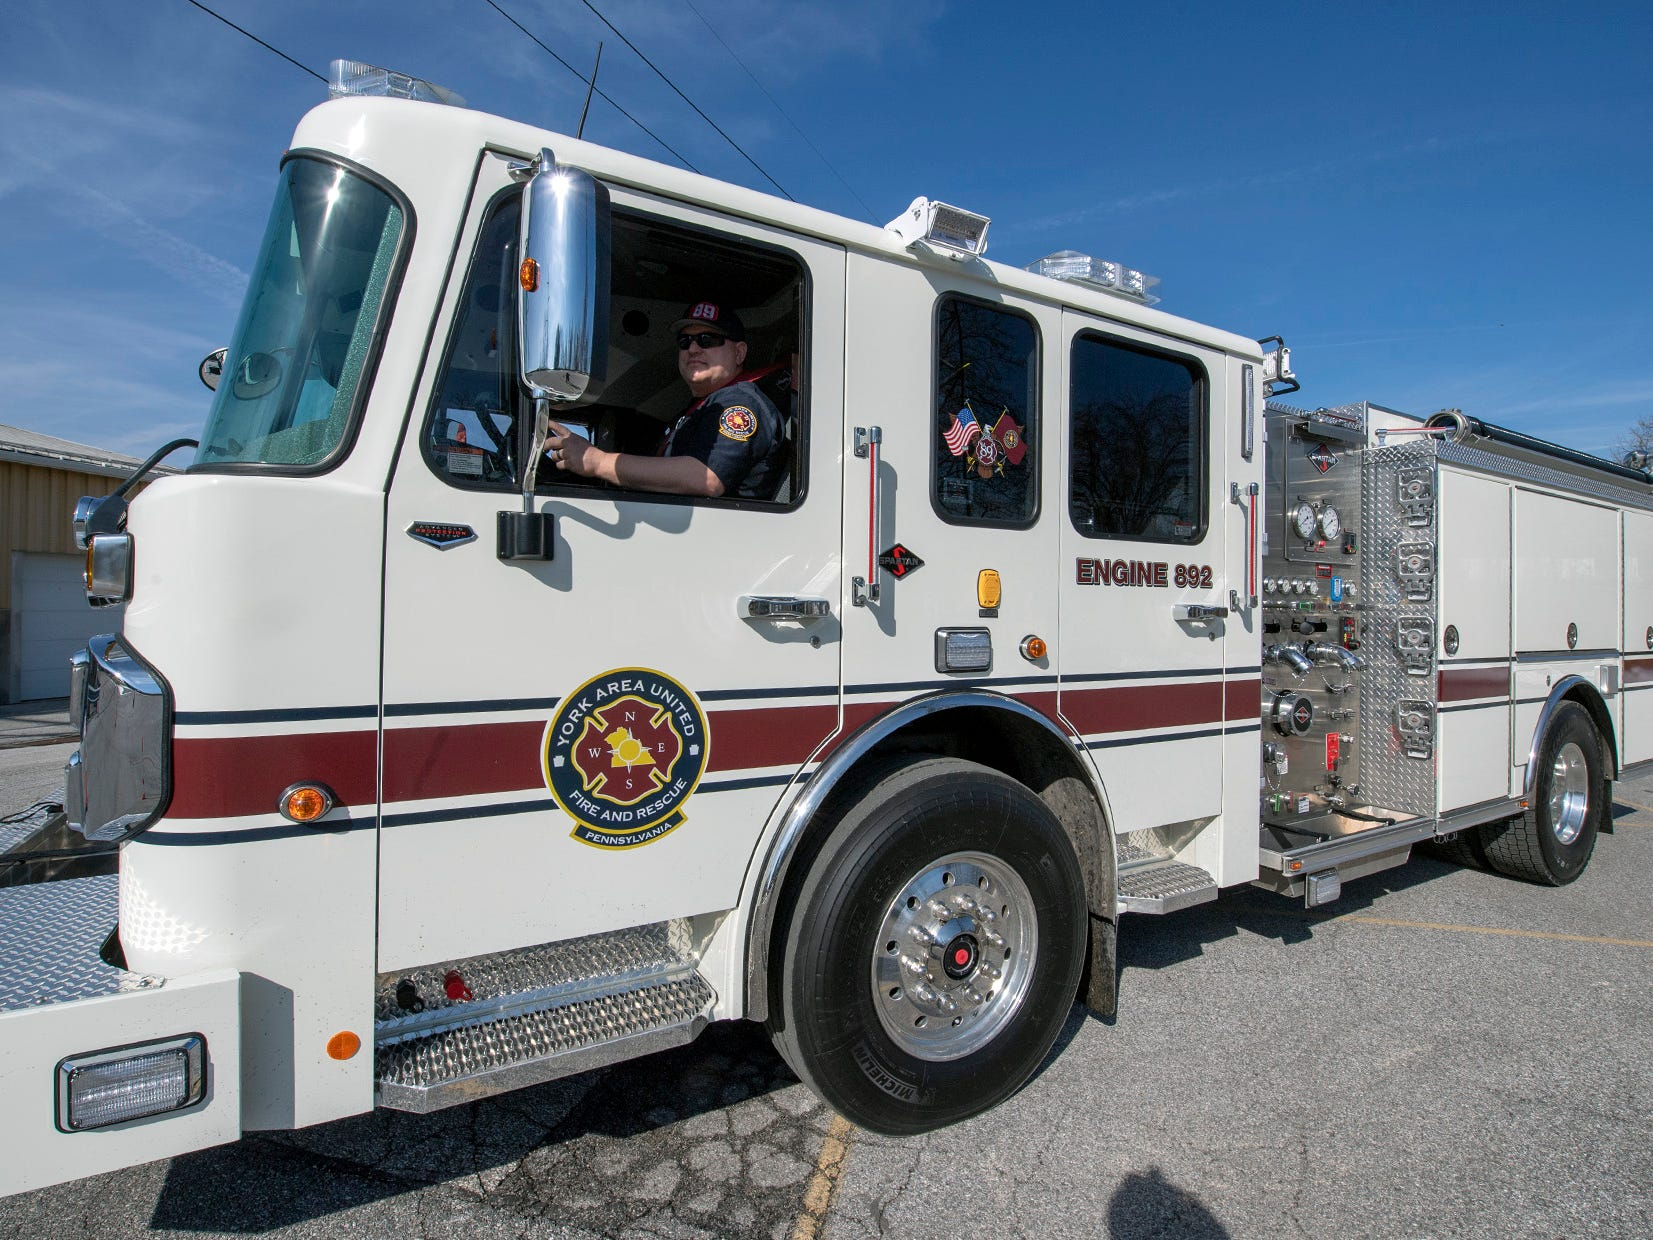 Firefighter Chuck Yingling takes Engine 892 through the slalom course during training at York Area United Fire & Rescue's Victory Fire Co. No. 2 in Spring Garden Township. The course includes backing the engine back though the course and parallel parking. All firefighters are trained to drive the engine.